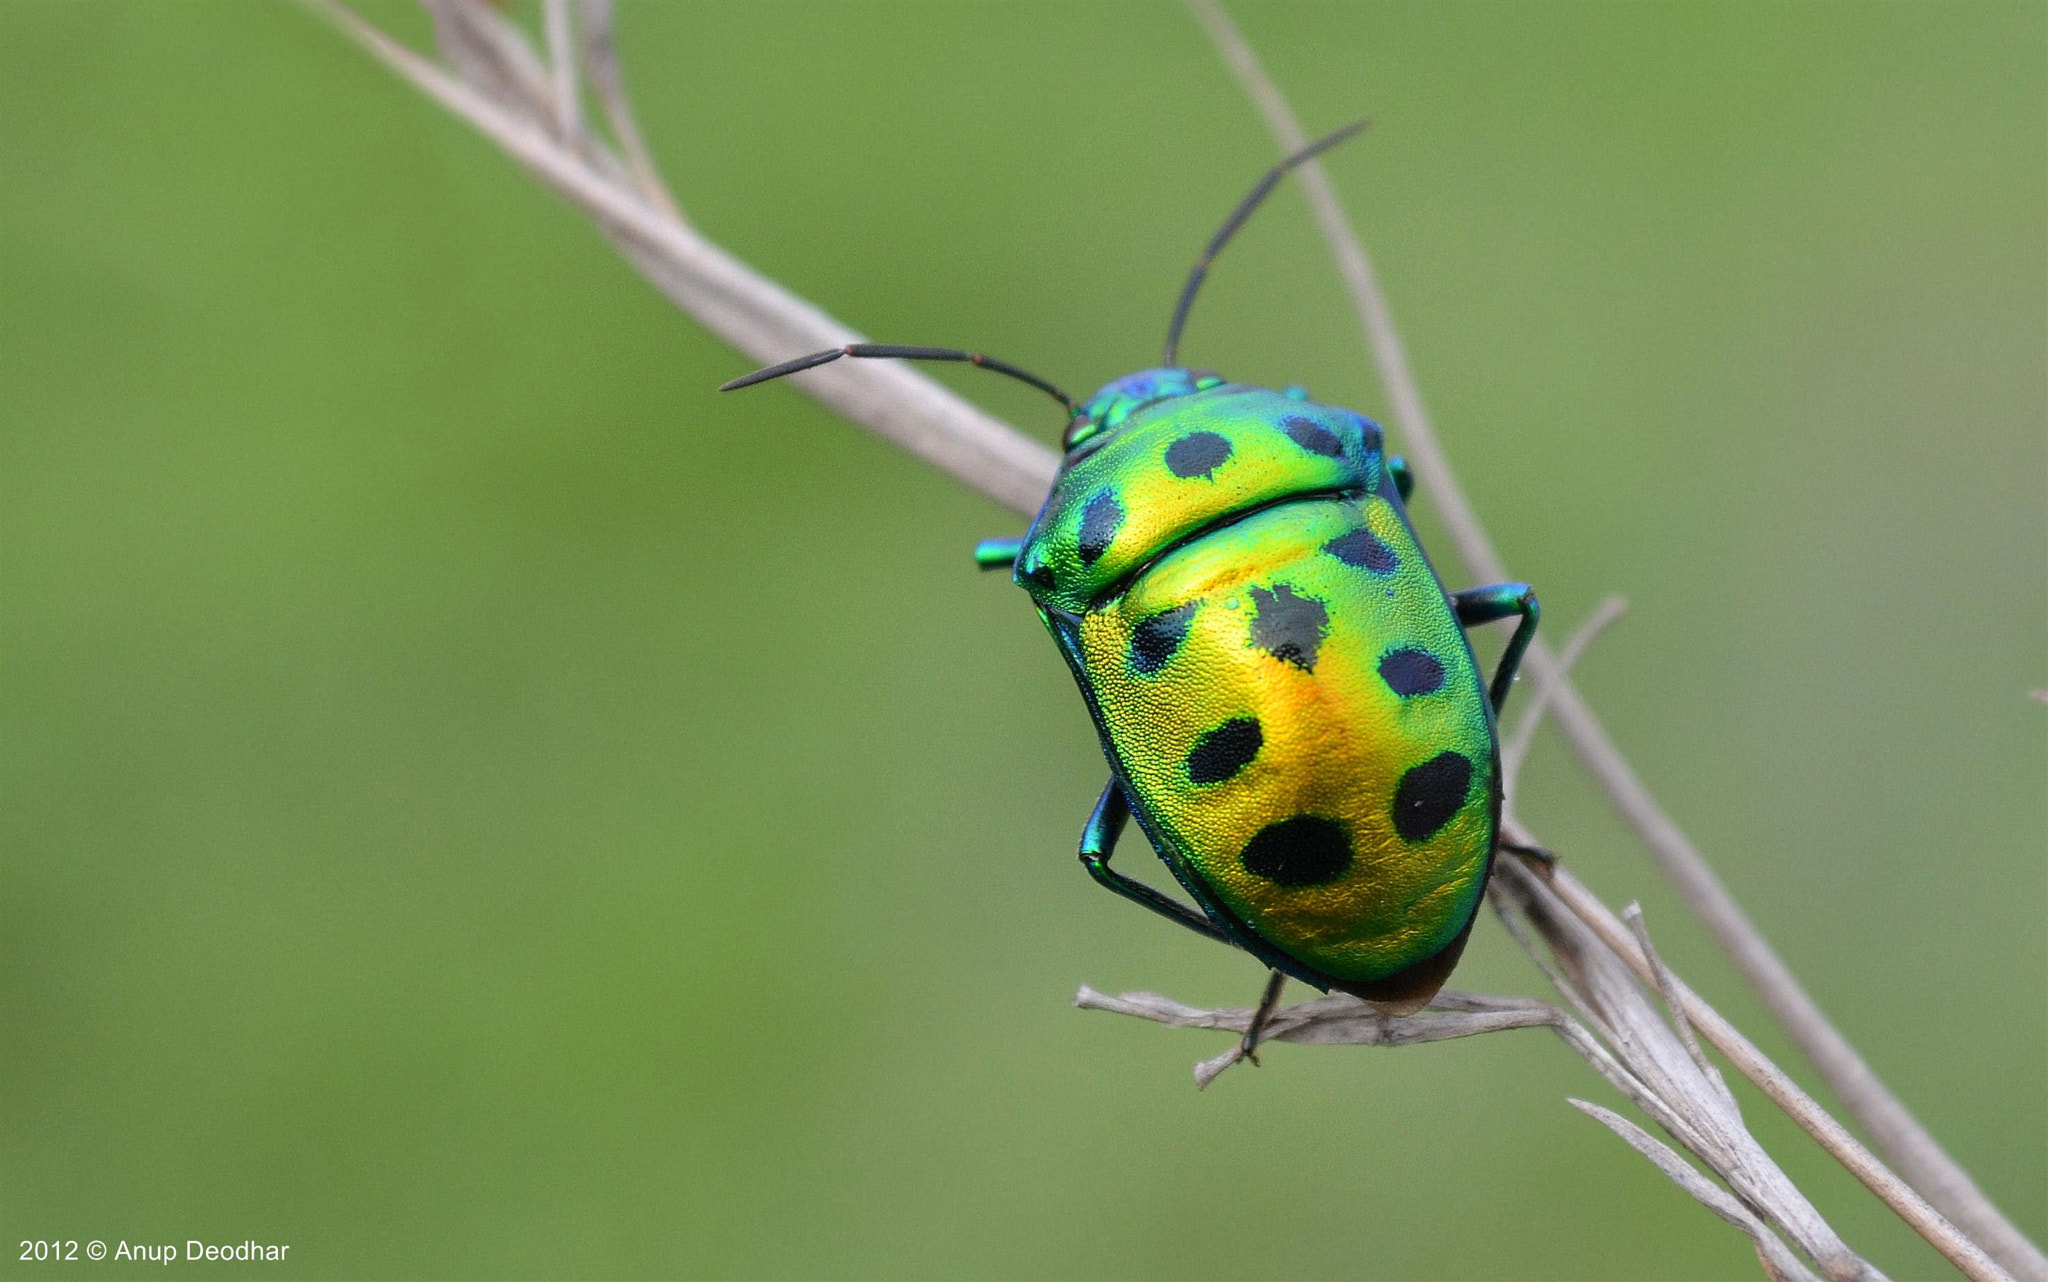 Photograph Jewel Bug by Anup Deodhar on 500px